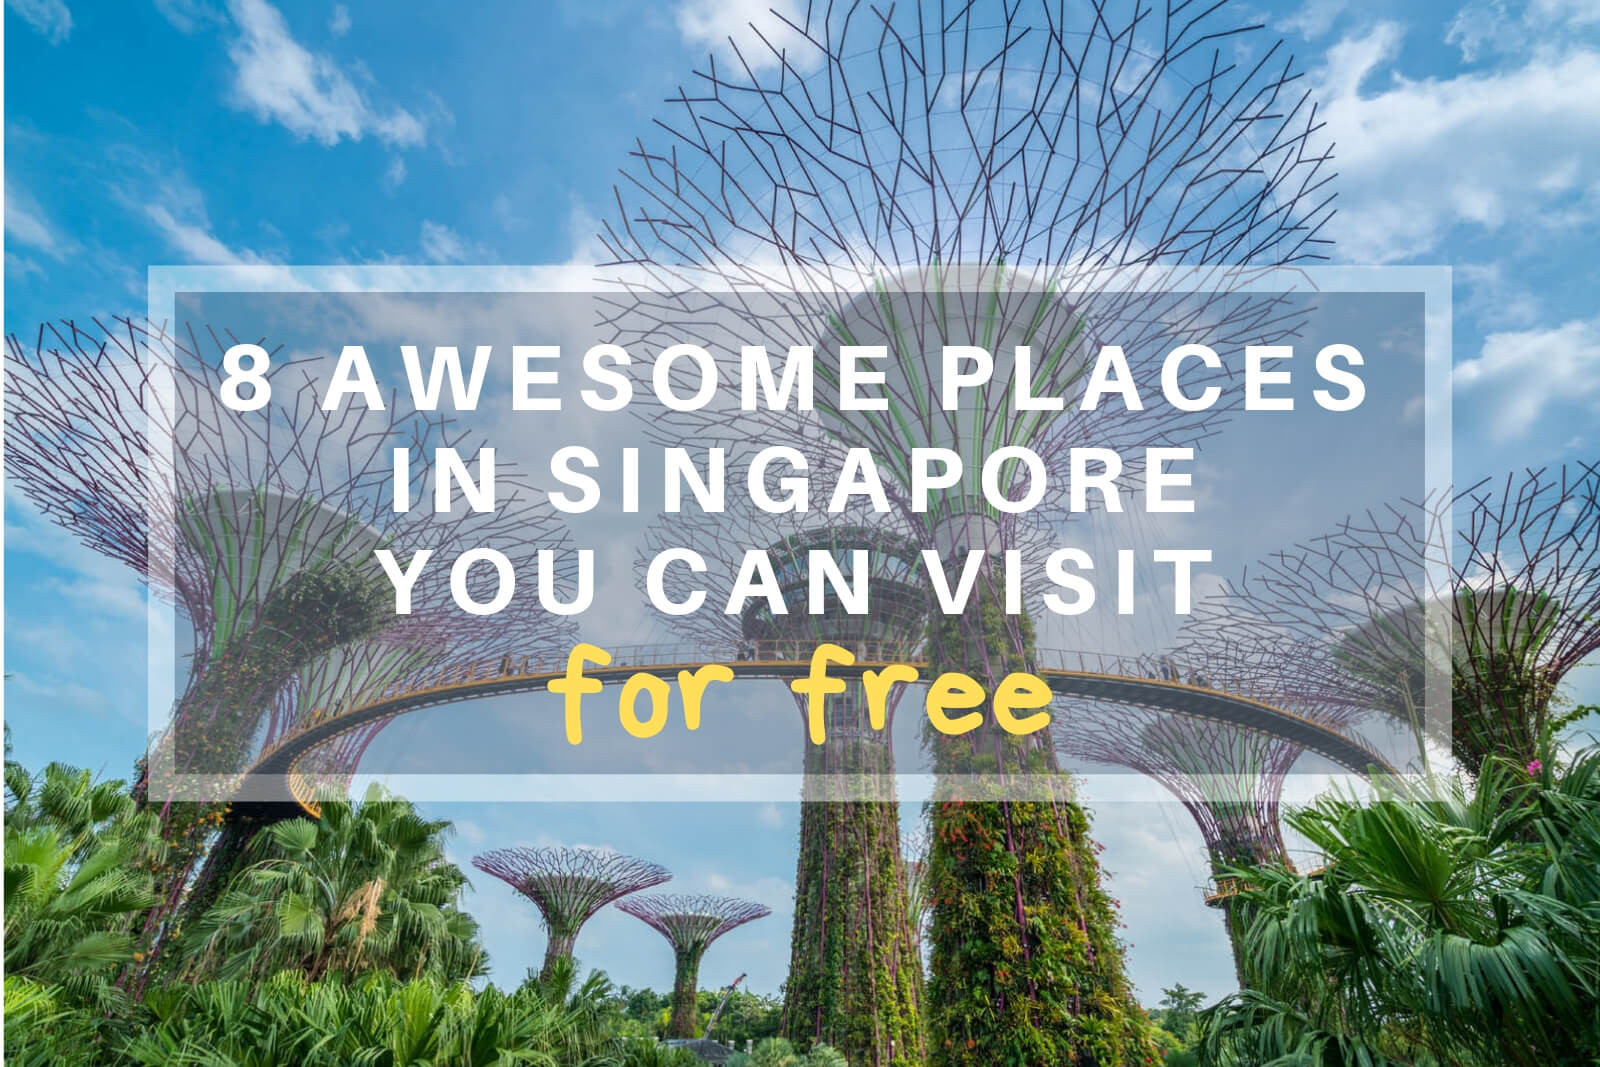 Awesome Places in Singapore You Can Visit for Free